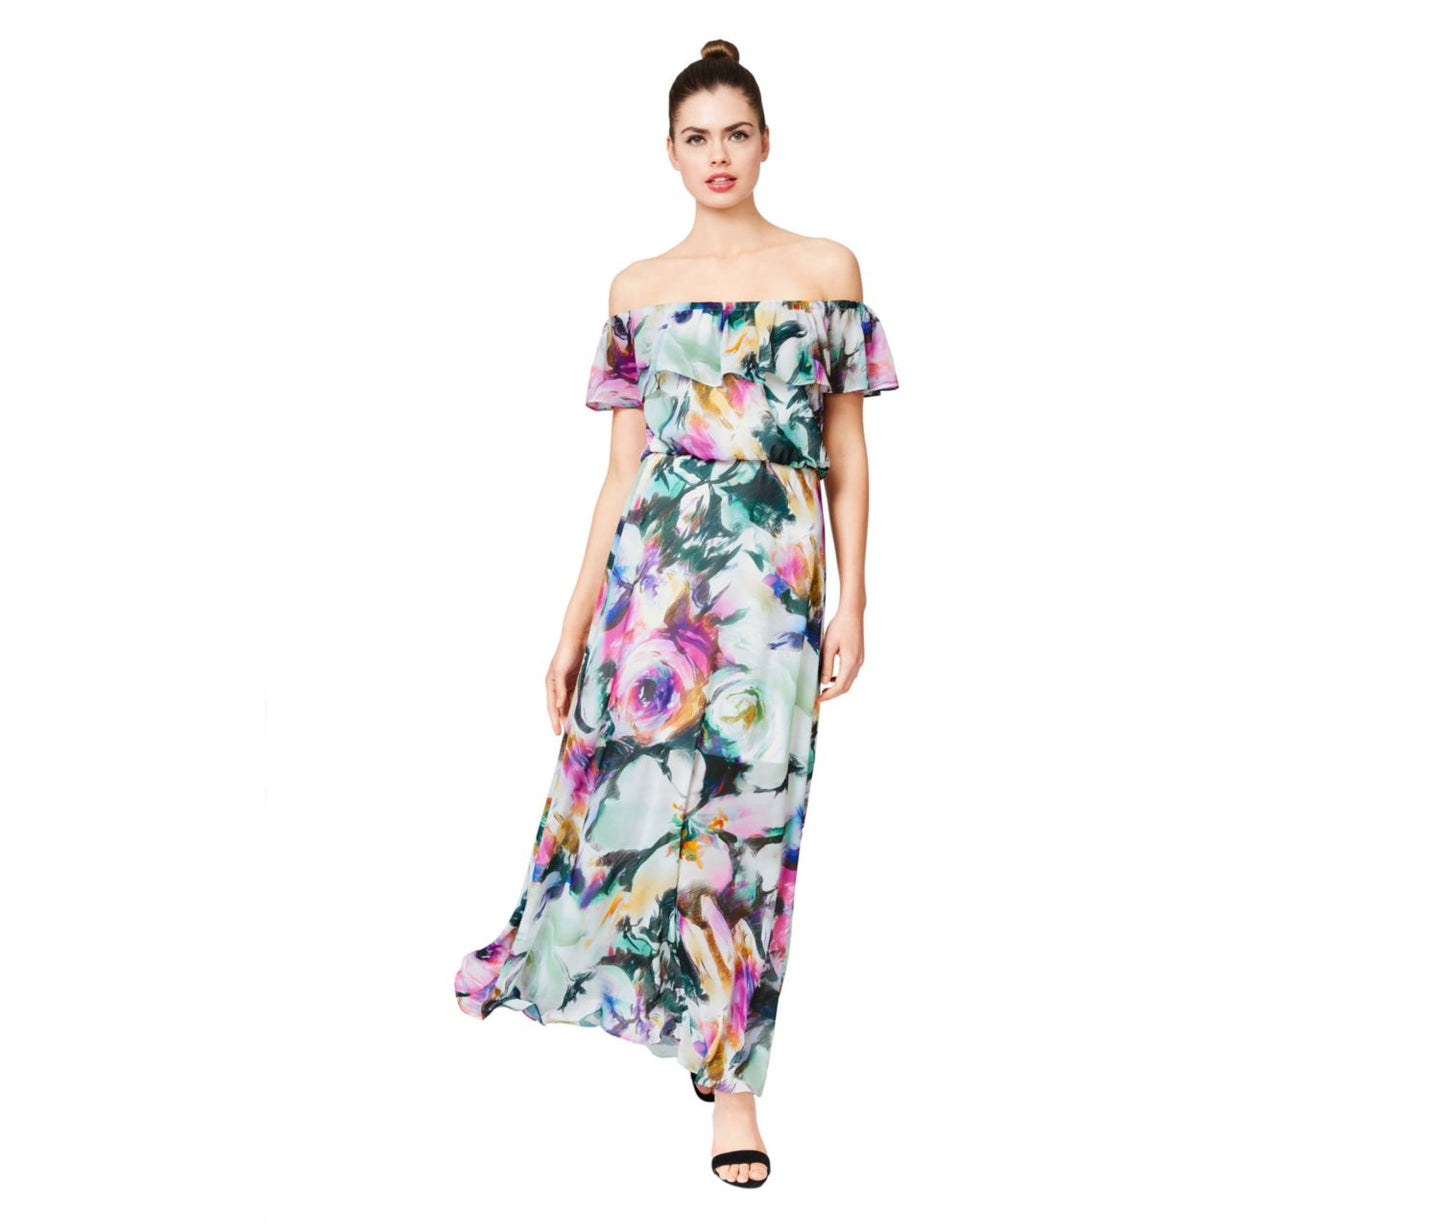 WISPY FLORAL STRAPLESS RUFFLE MAXI DRESS MULTI - APPAREL - Betsey Johnson